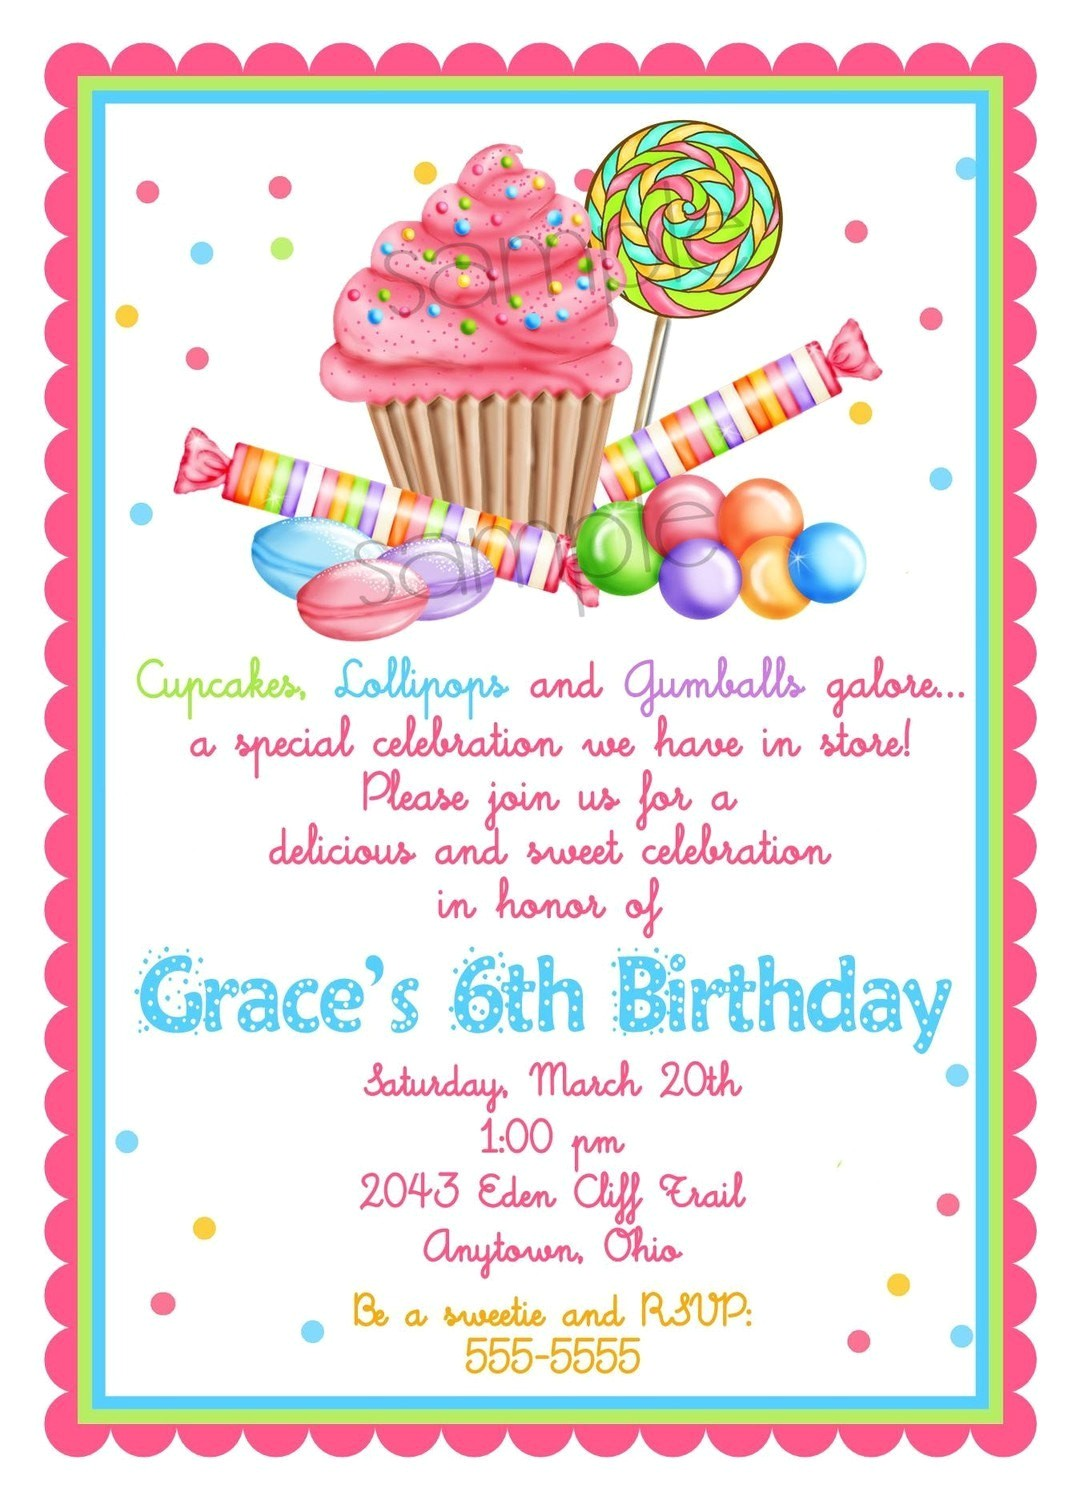 Sweet Shop Birthday Party Invitations Sweet Shop Birthday Party Invitations Candy Cupcake